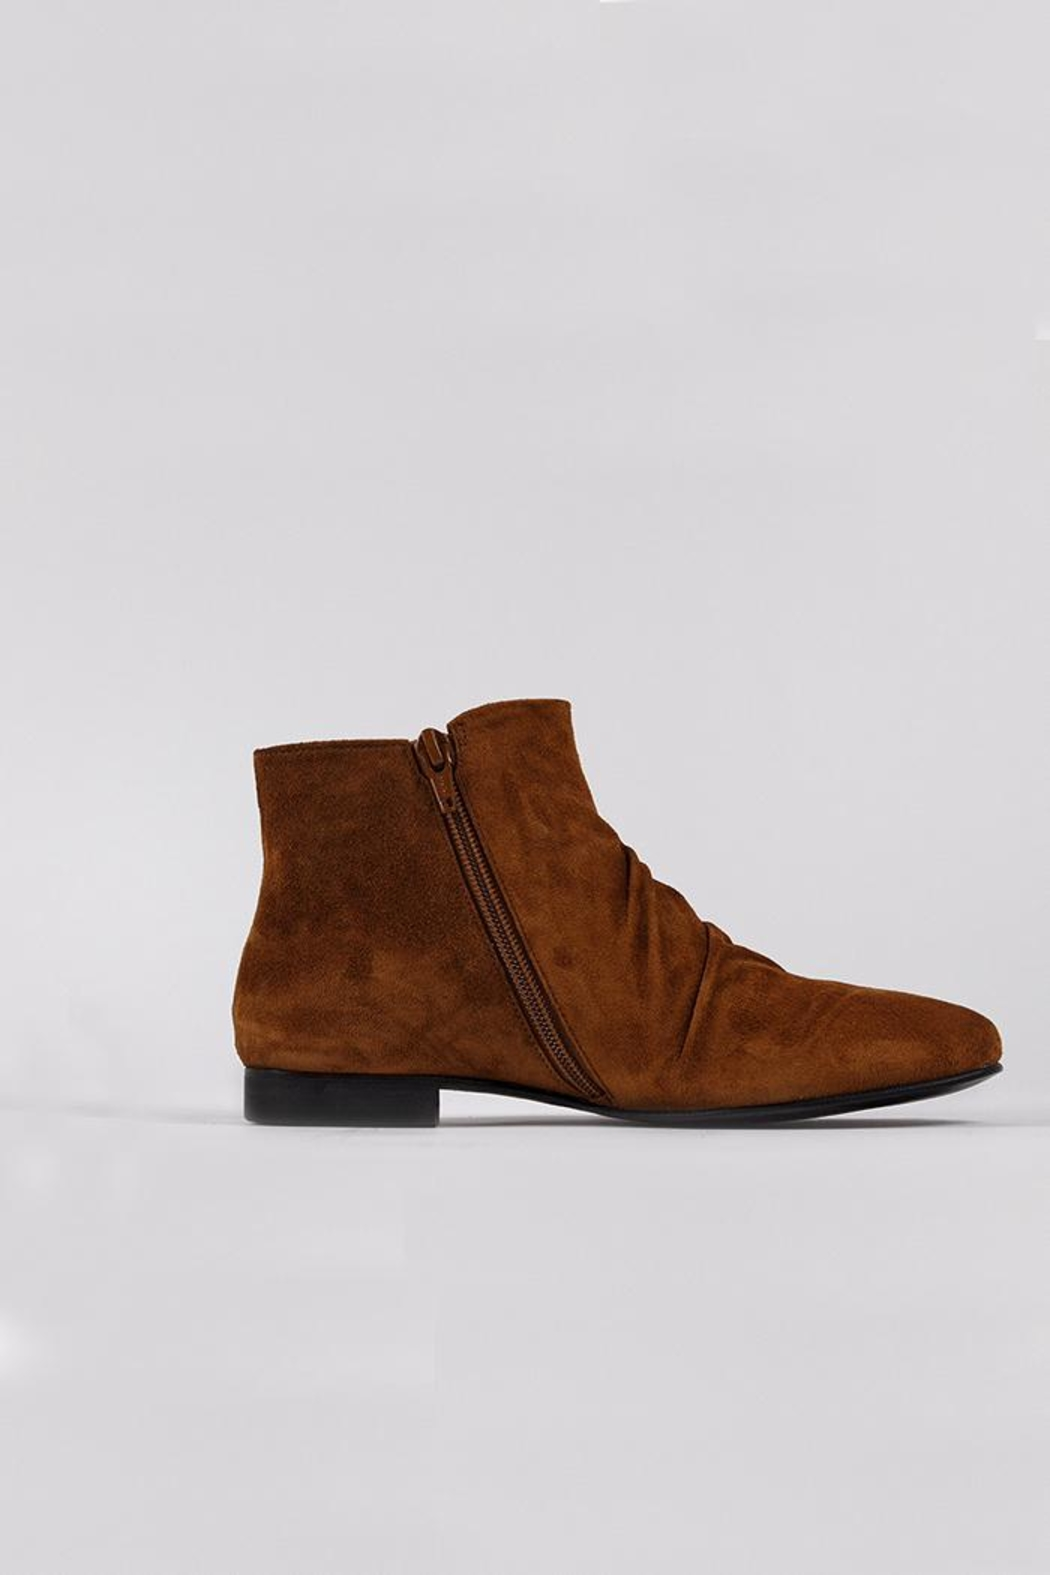 Coclico Suede Cognac Boots - Front Full Image